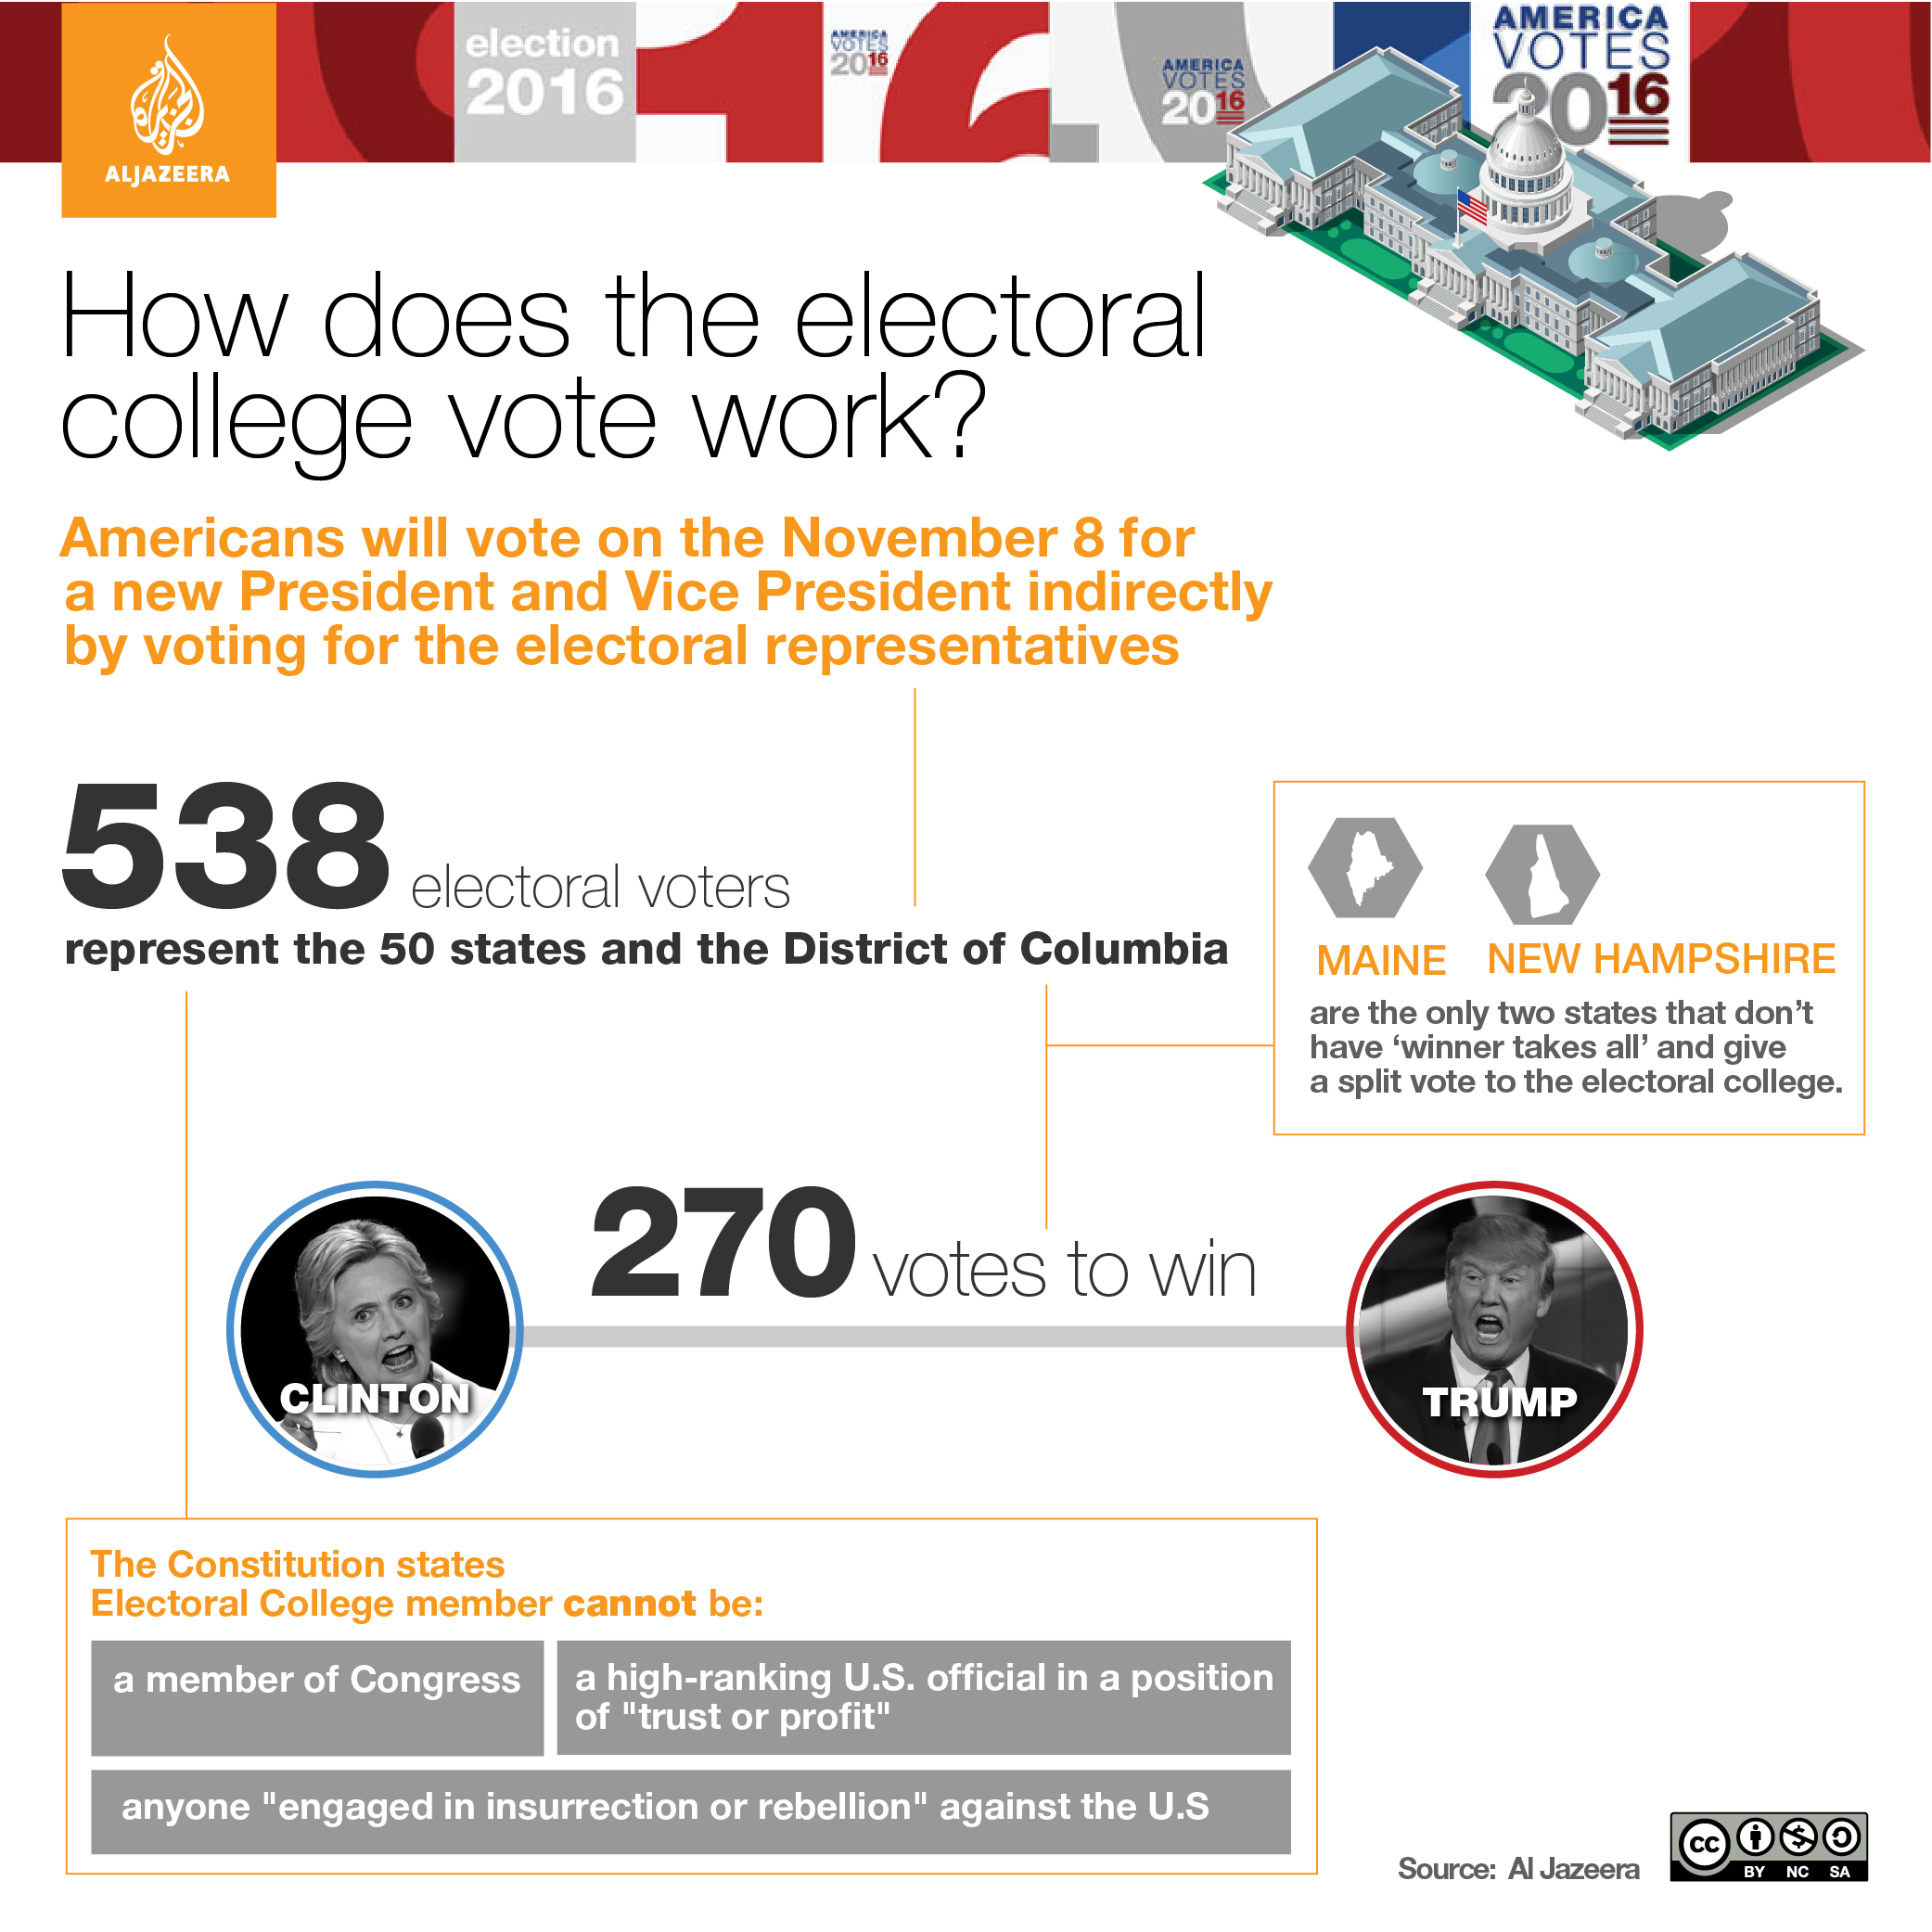 electoral college system The electoral college, congress and representation a majority (55%) of americans say the constitution should be amended so that the candidate who wins the most votes in the presidential election would win, while 41% say the current system should be kept so that the candidate who wins the most electoral college votes wins the election.